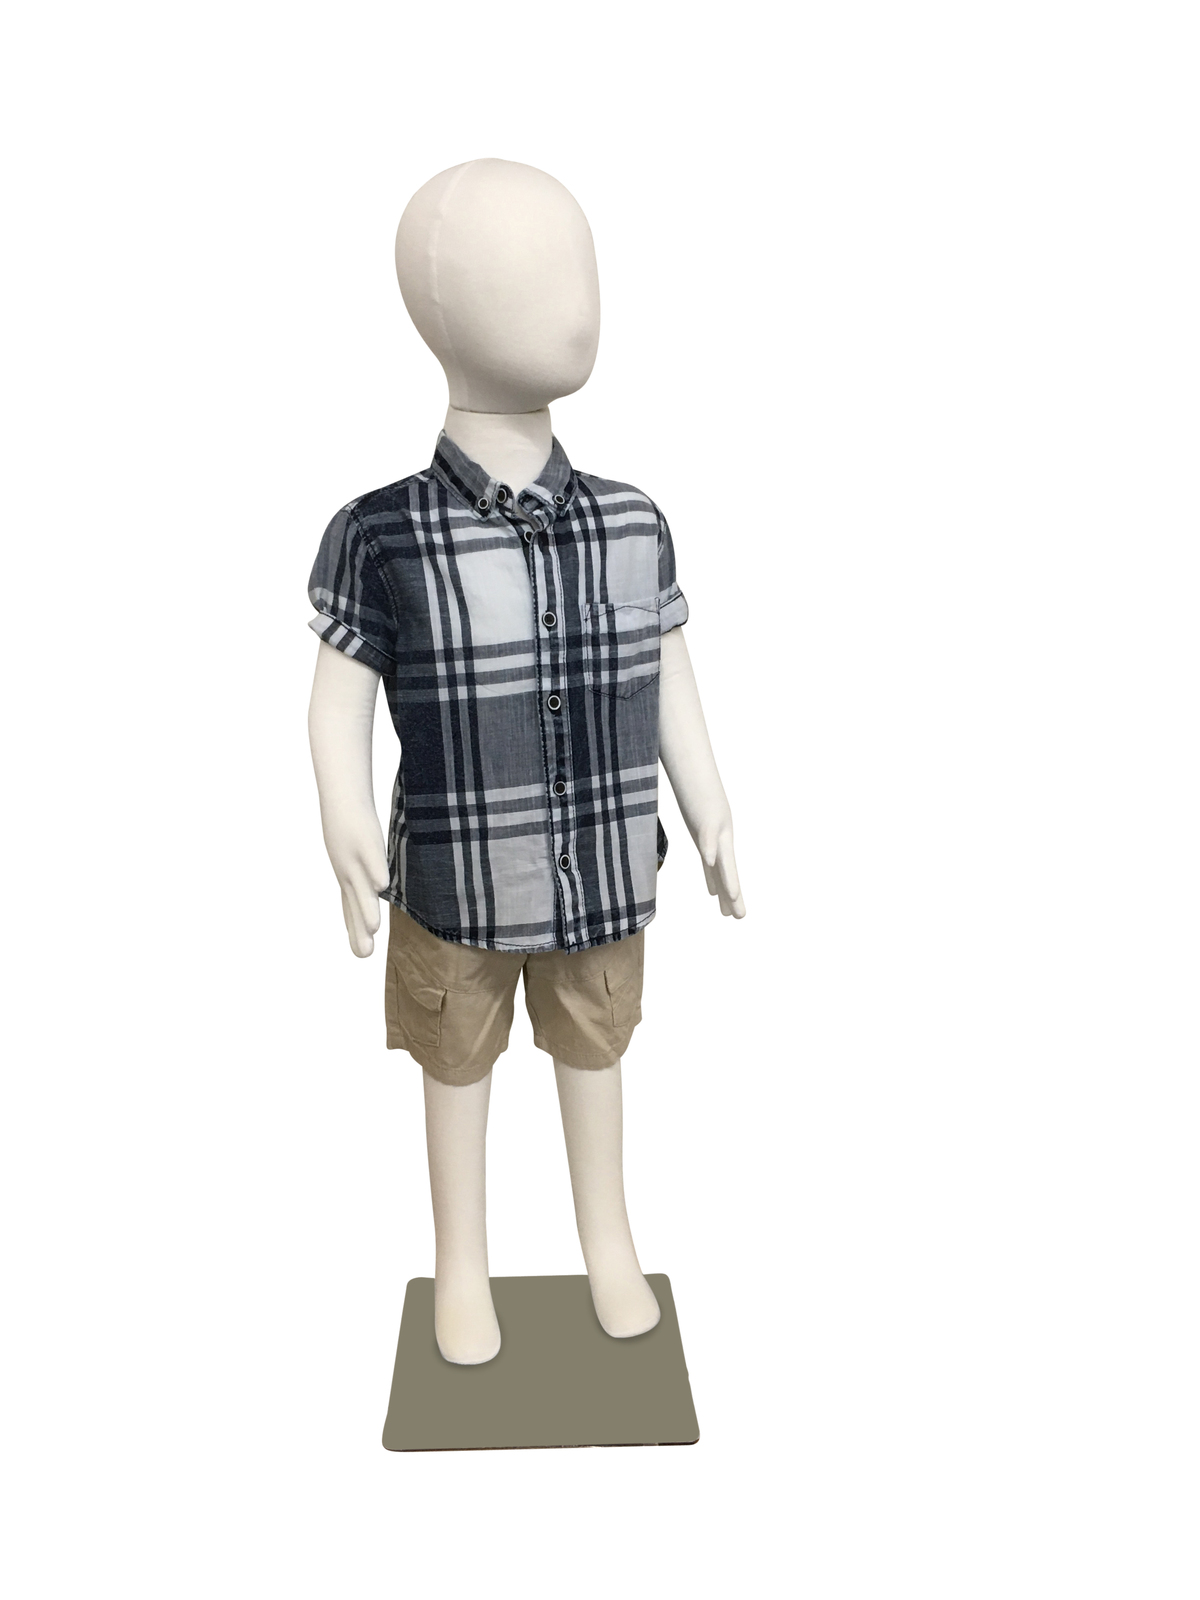 Ihram Kids For Sale Dubai: Large Child Flexible Mannequin Full Body Standing With